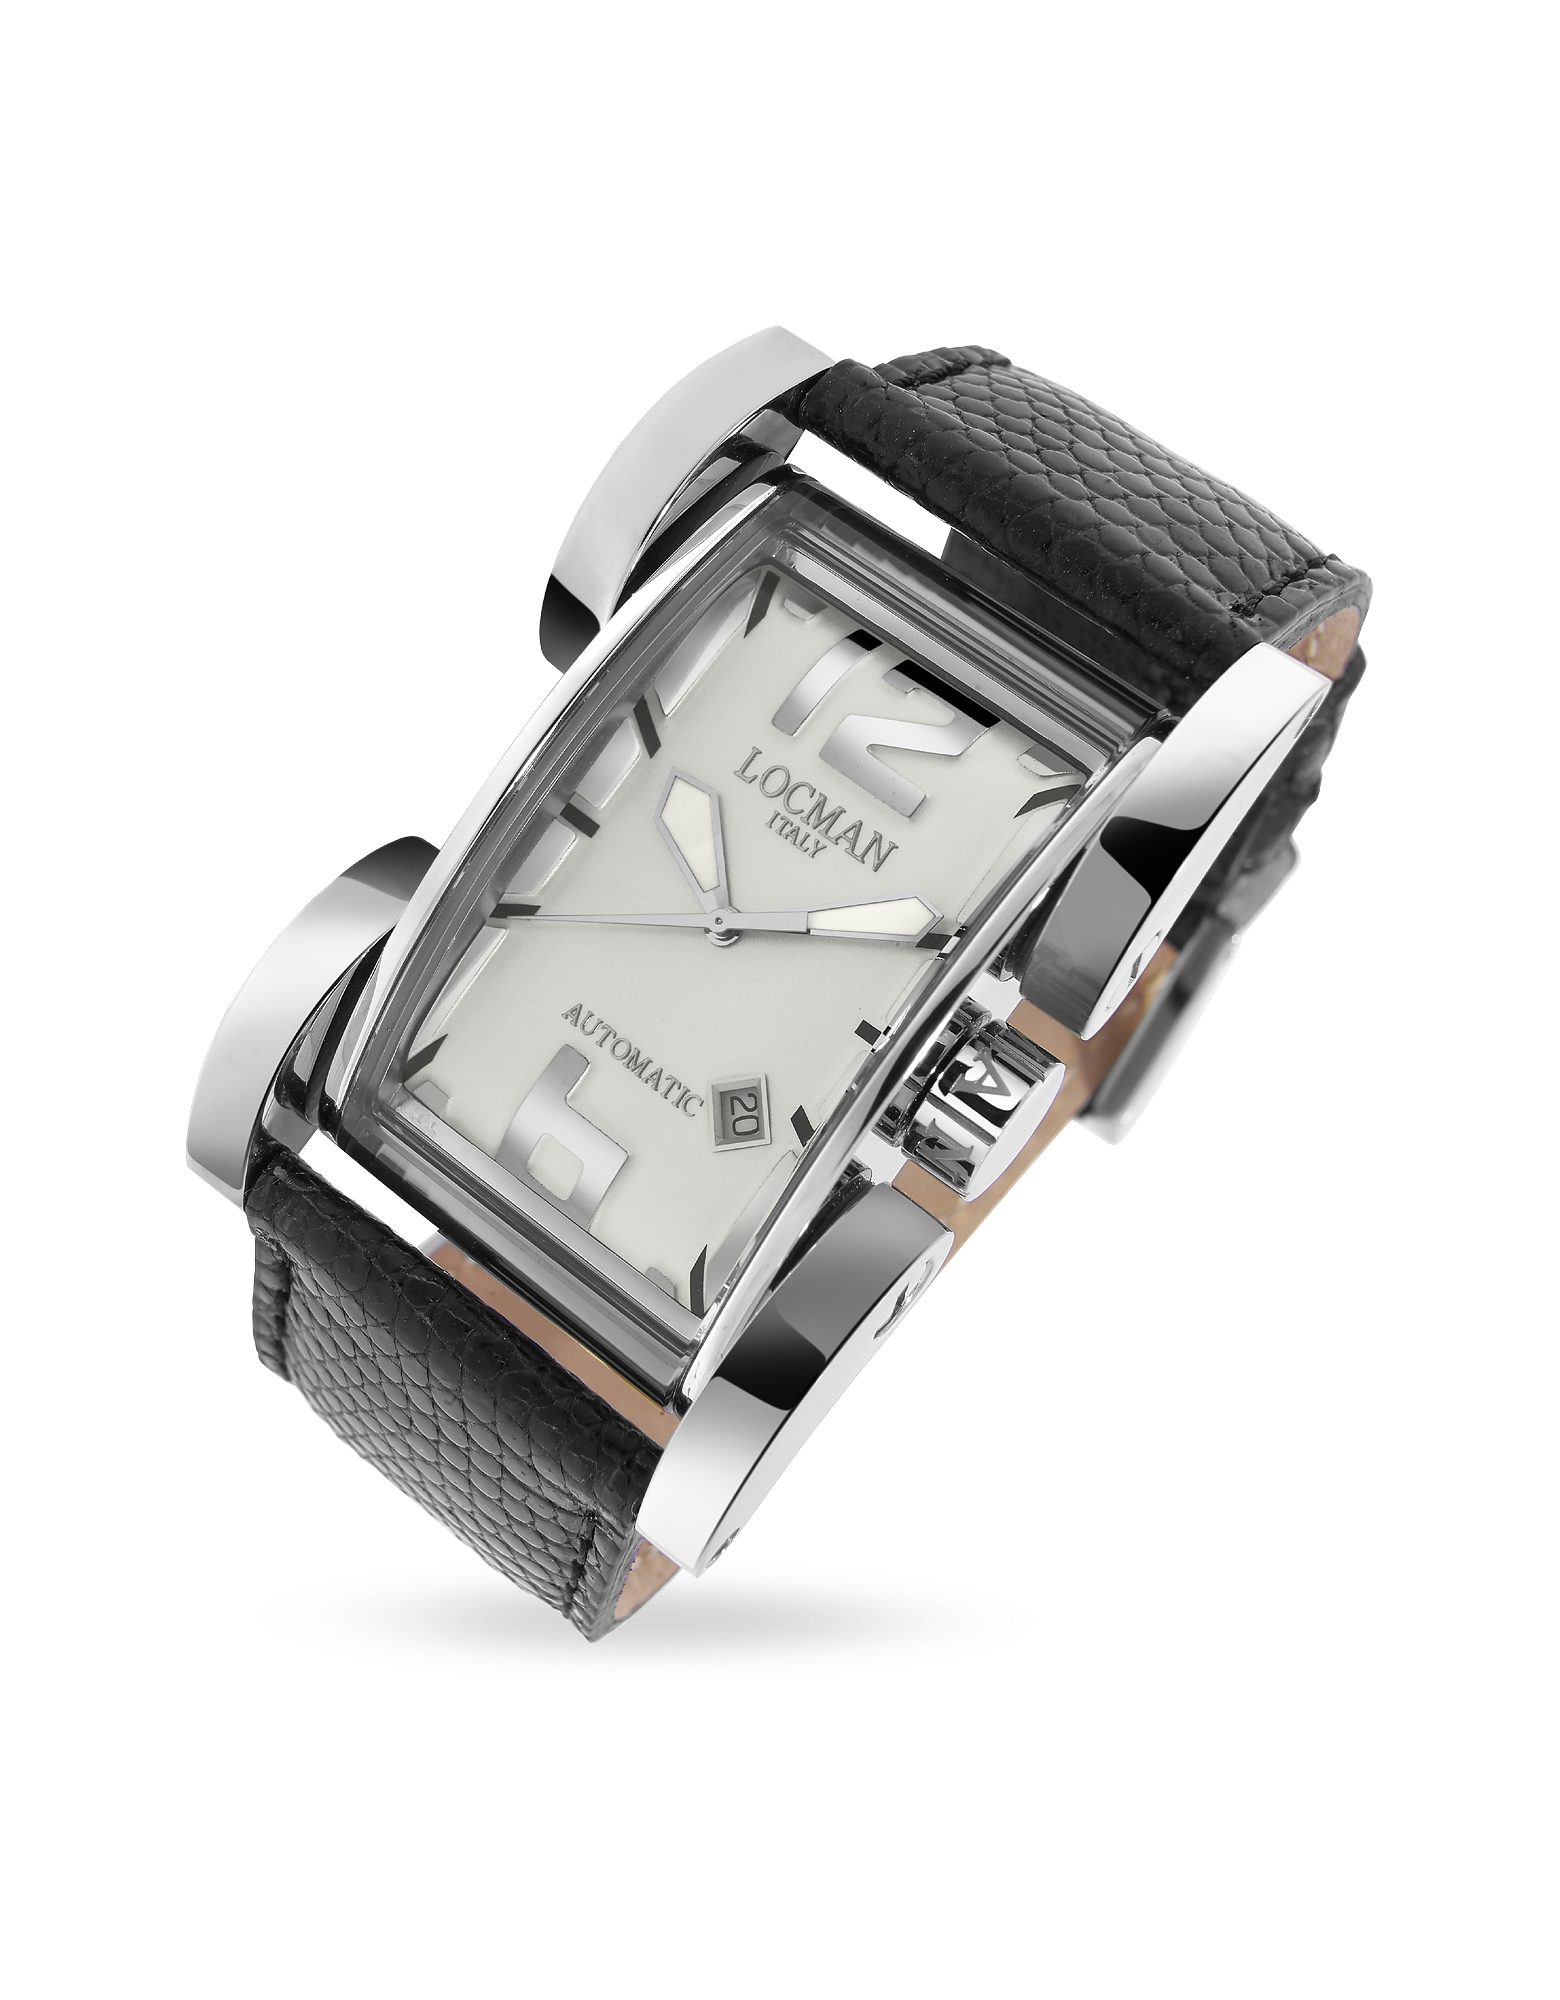 Locman Men's Watches, Latin Lover - Silver Dial Black Reptile Band Automatic Watch